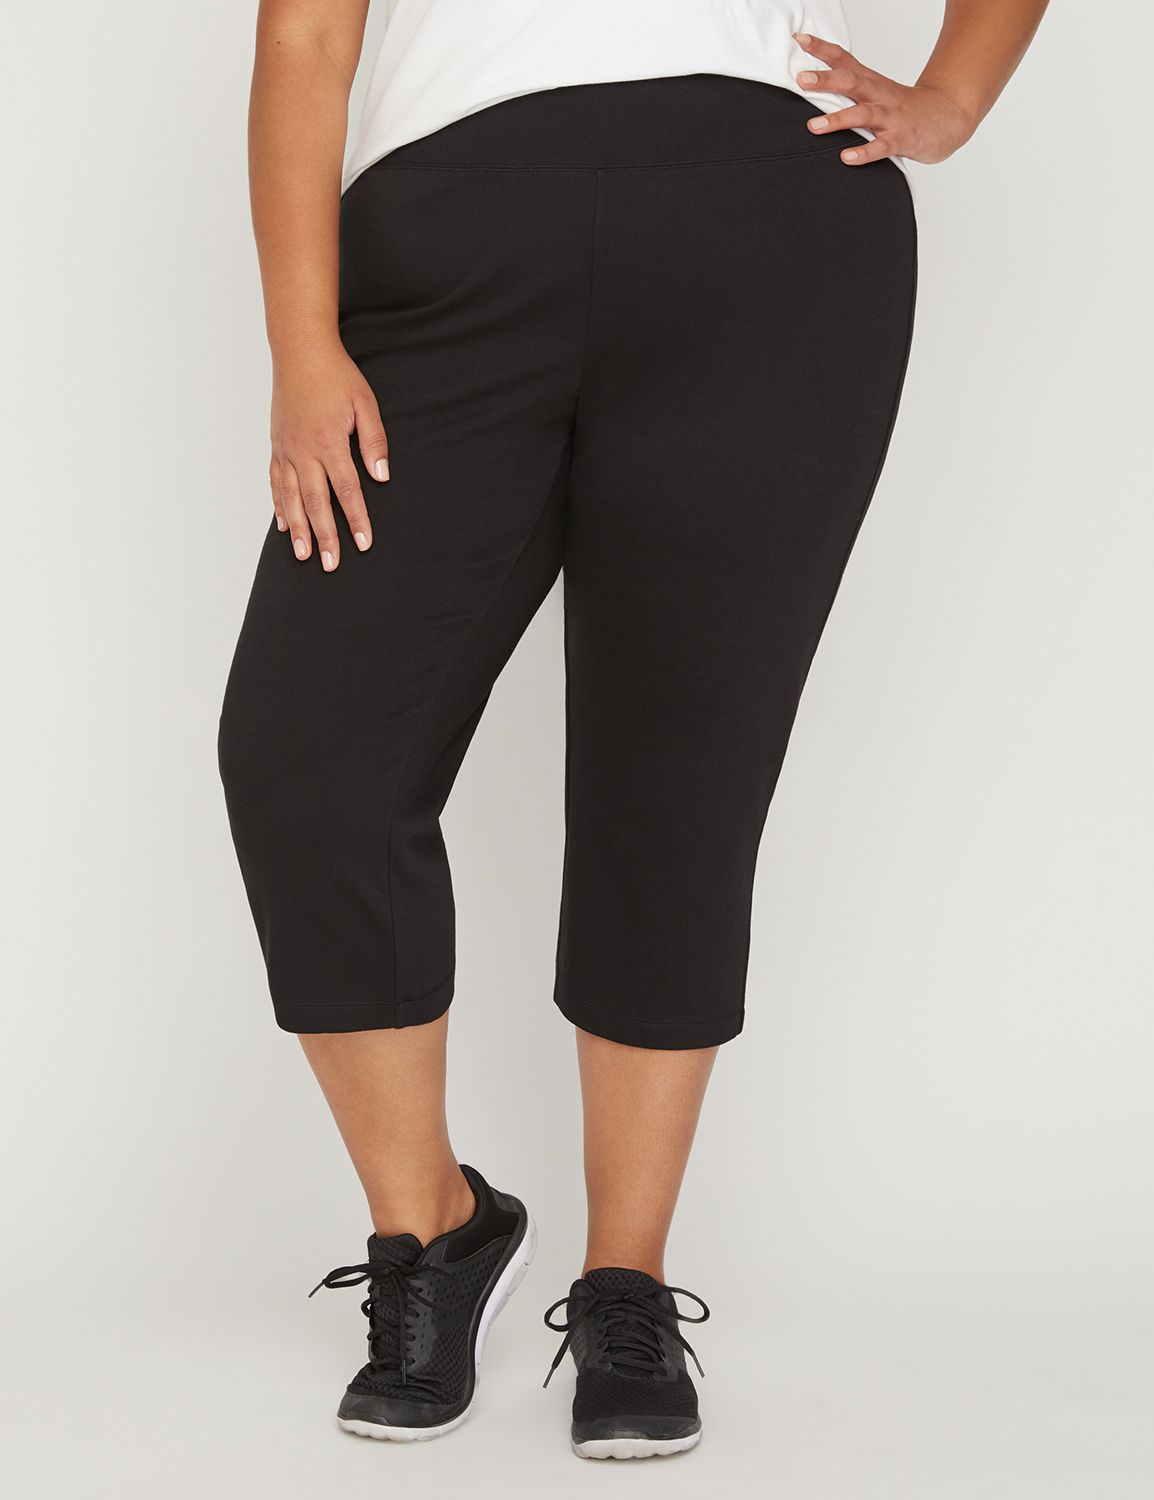 Yoga Capri Yoga Capri MP-300005167